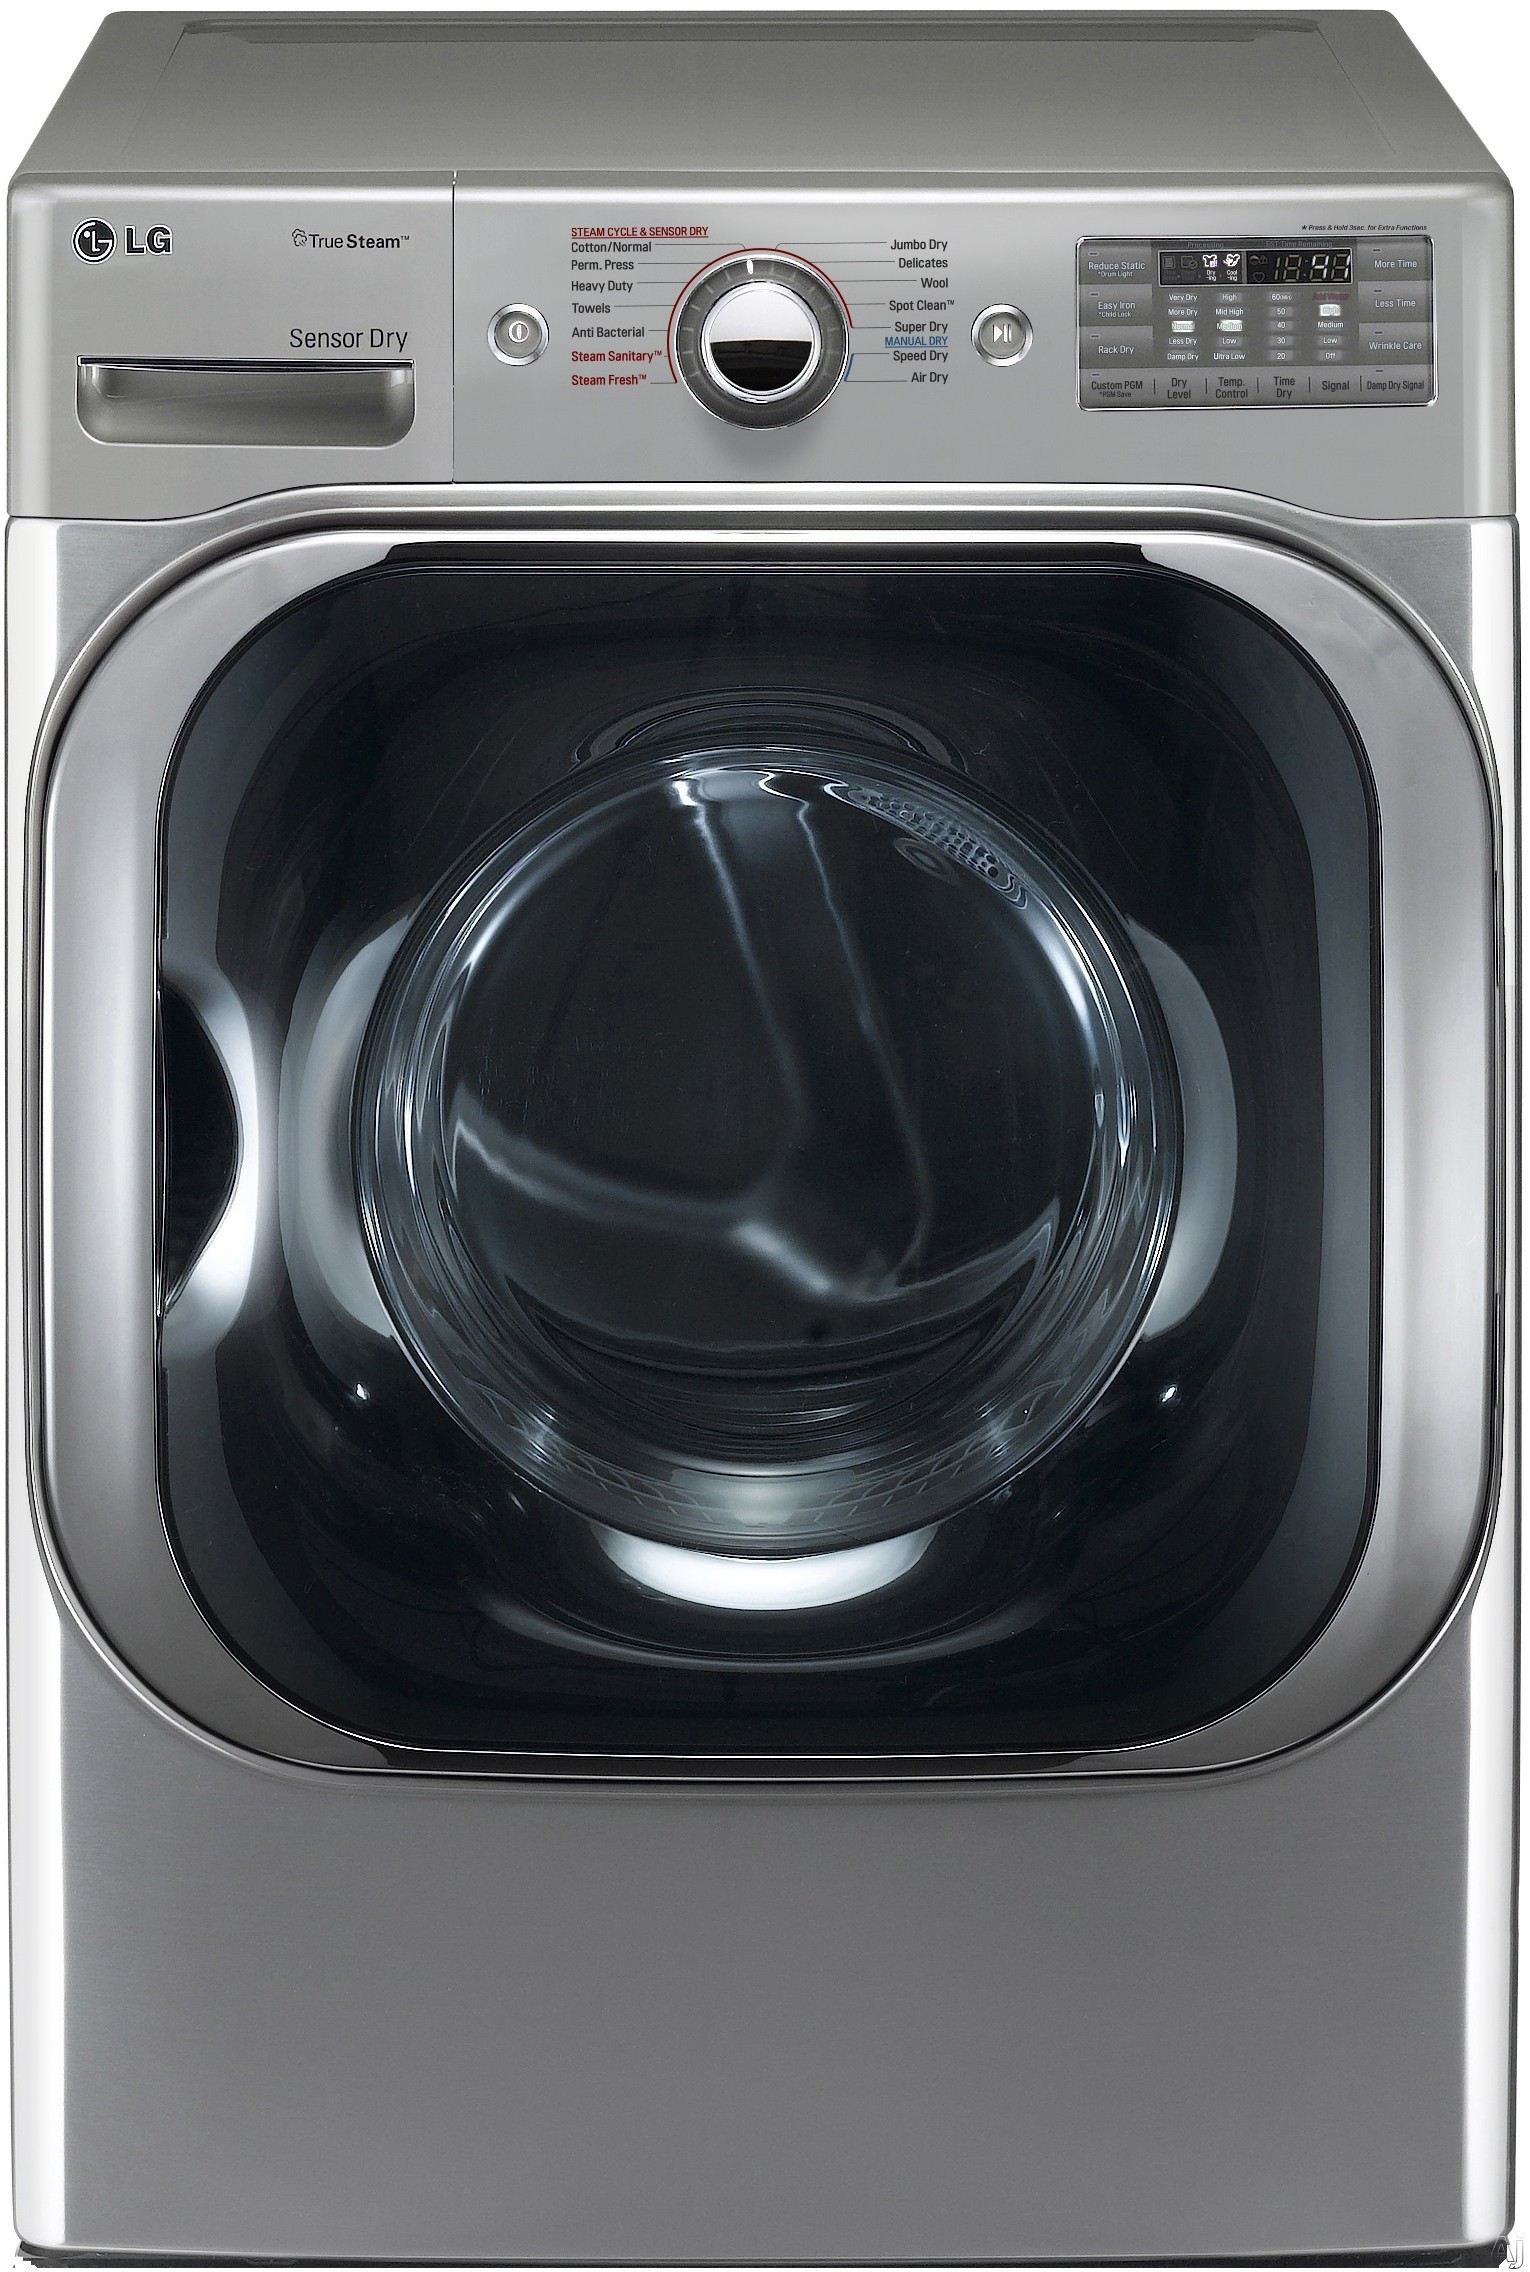 LG SteamDryer Series DLEX8100 29 Inch 9.0 cu. ft. Electric Dryer with 14 Dry Cycles, 11 Drying Options, 5 Temperature Selections, TrueSteam Technology, Sensor Dry, SpotClean, Wrinkle Care, SmartDiagnosis and LoDecibel Quiet Operation